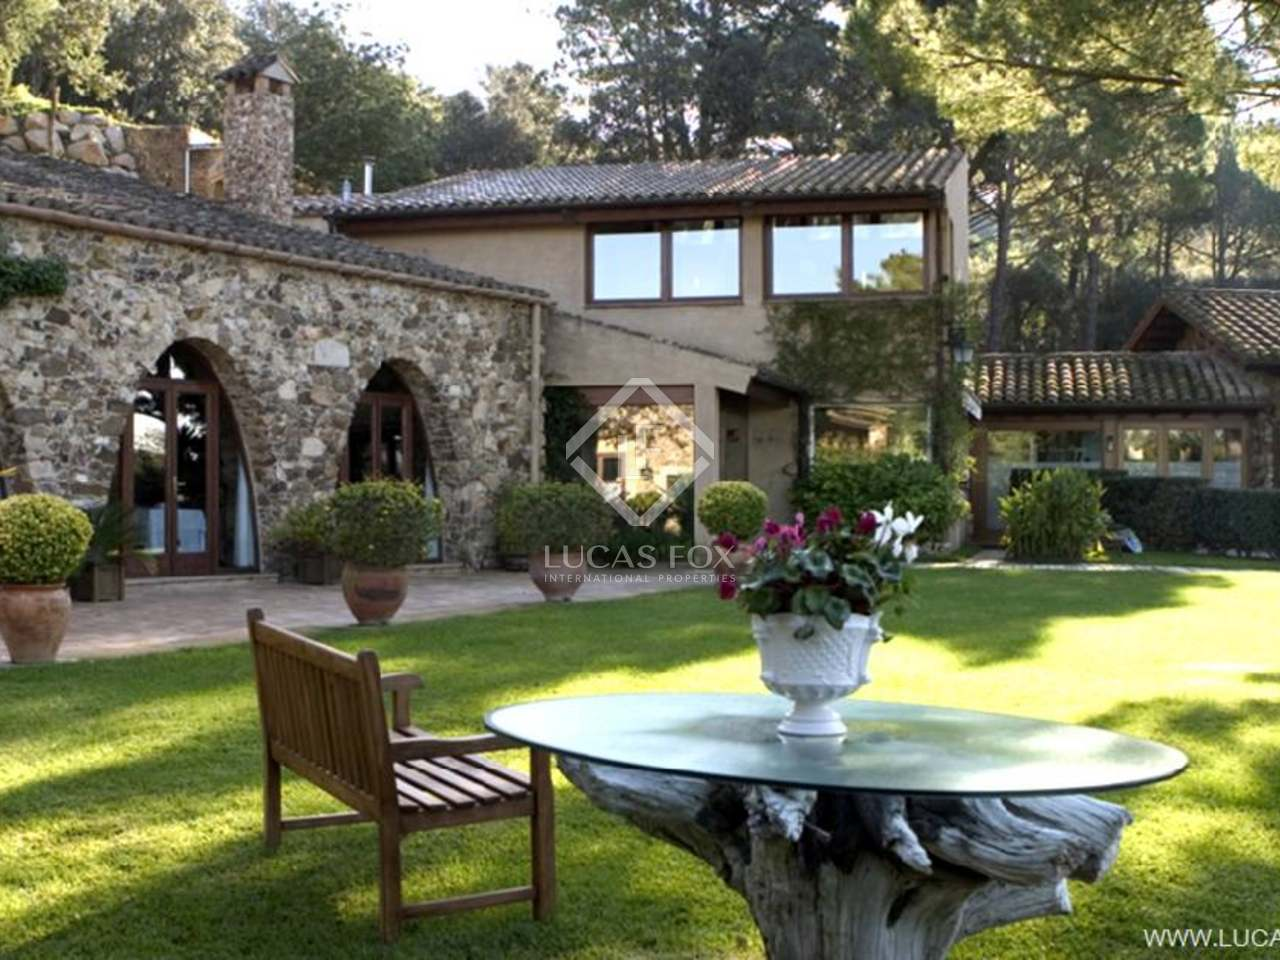 Exceptional 18th Century country property for sale in one of the most sought-after locations of the Costa Brava - former Michelin star restaurant with professional kitchens. Ideal commerial opportunity.